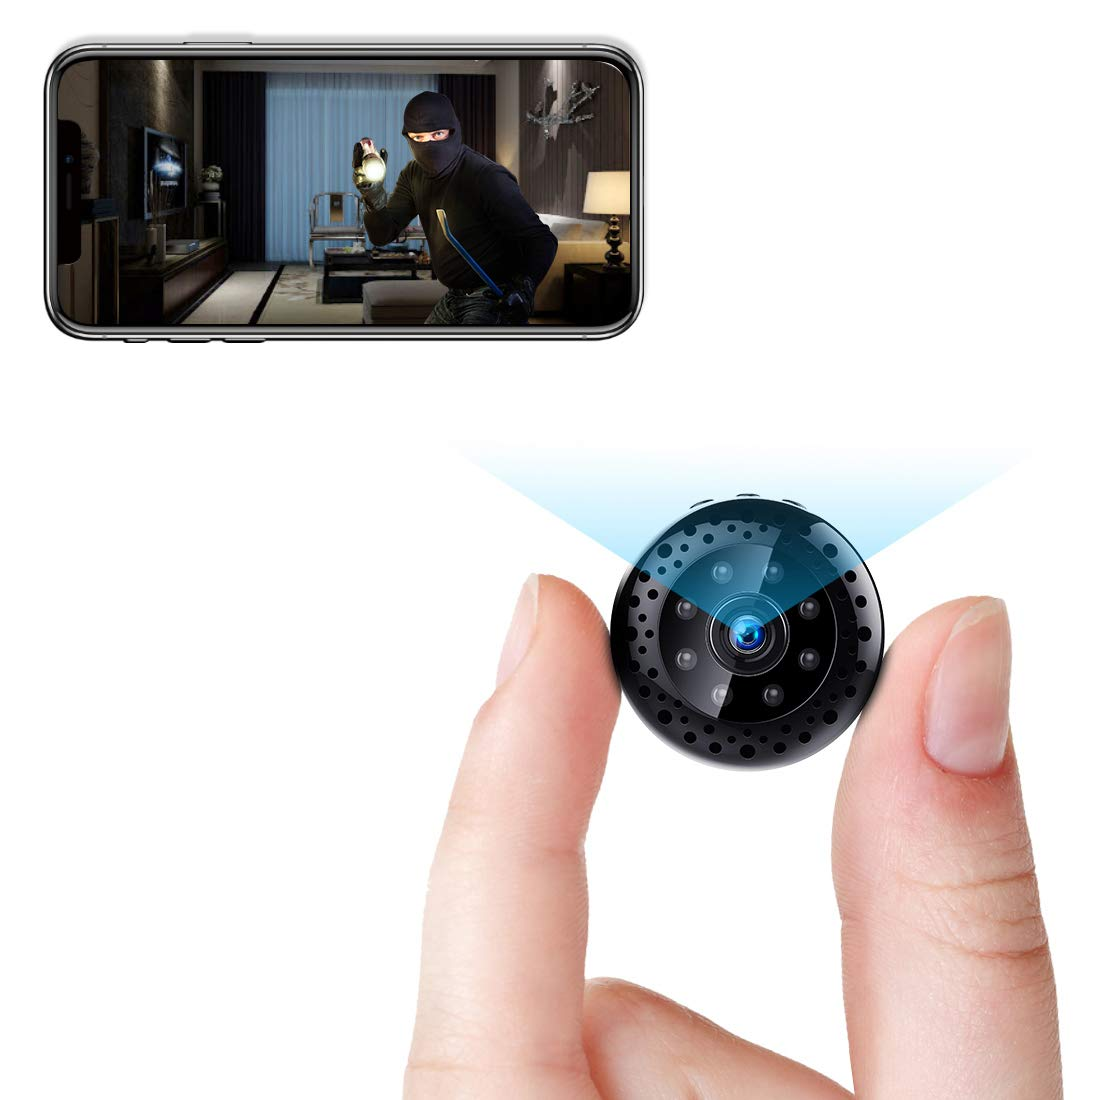 Mini WiFi Camera Wireless Security Nanny Cam 1080P Surveillance Cameras Tiny Video Recorder with Phone App Live Feed, Night Vision, Motion Detection for Car Indoor Outdoor